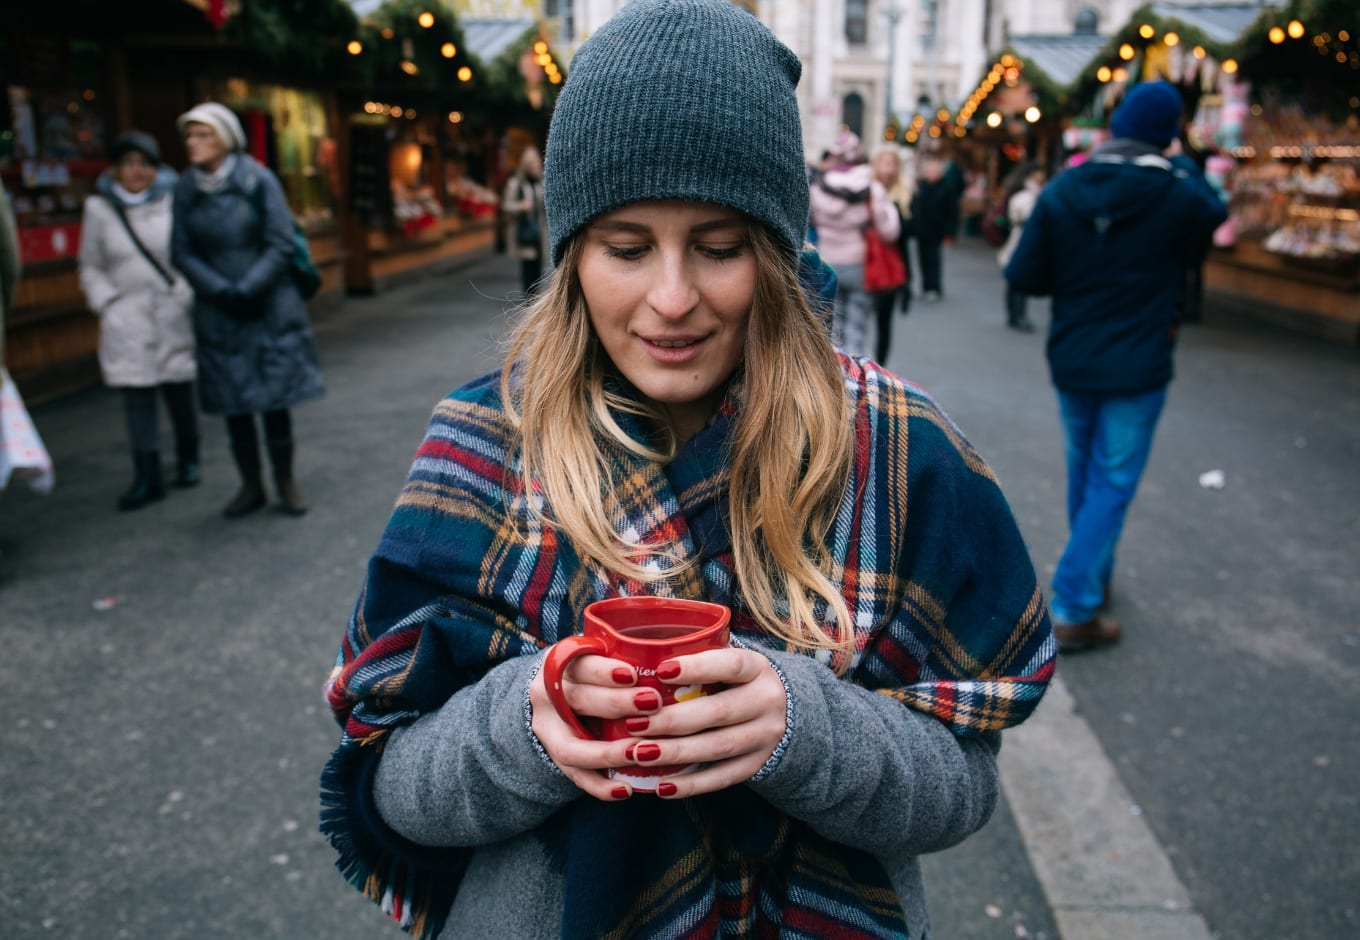 Girl sipping on holiday drinks in New York City, New York